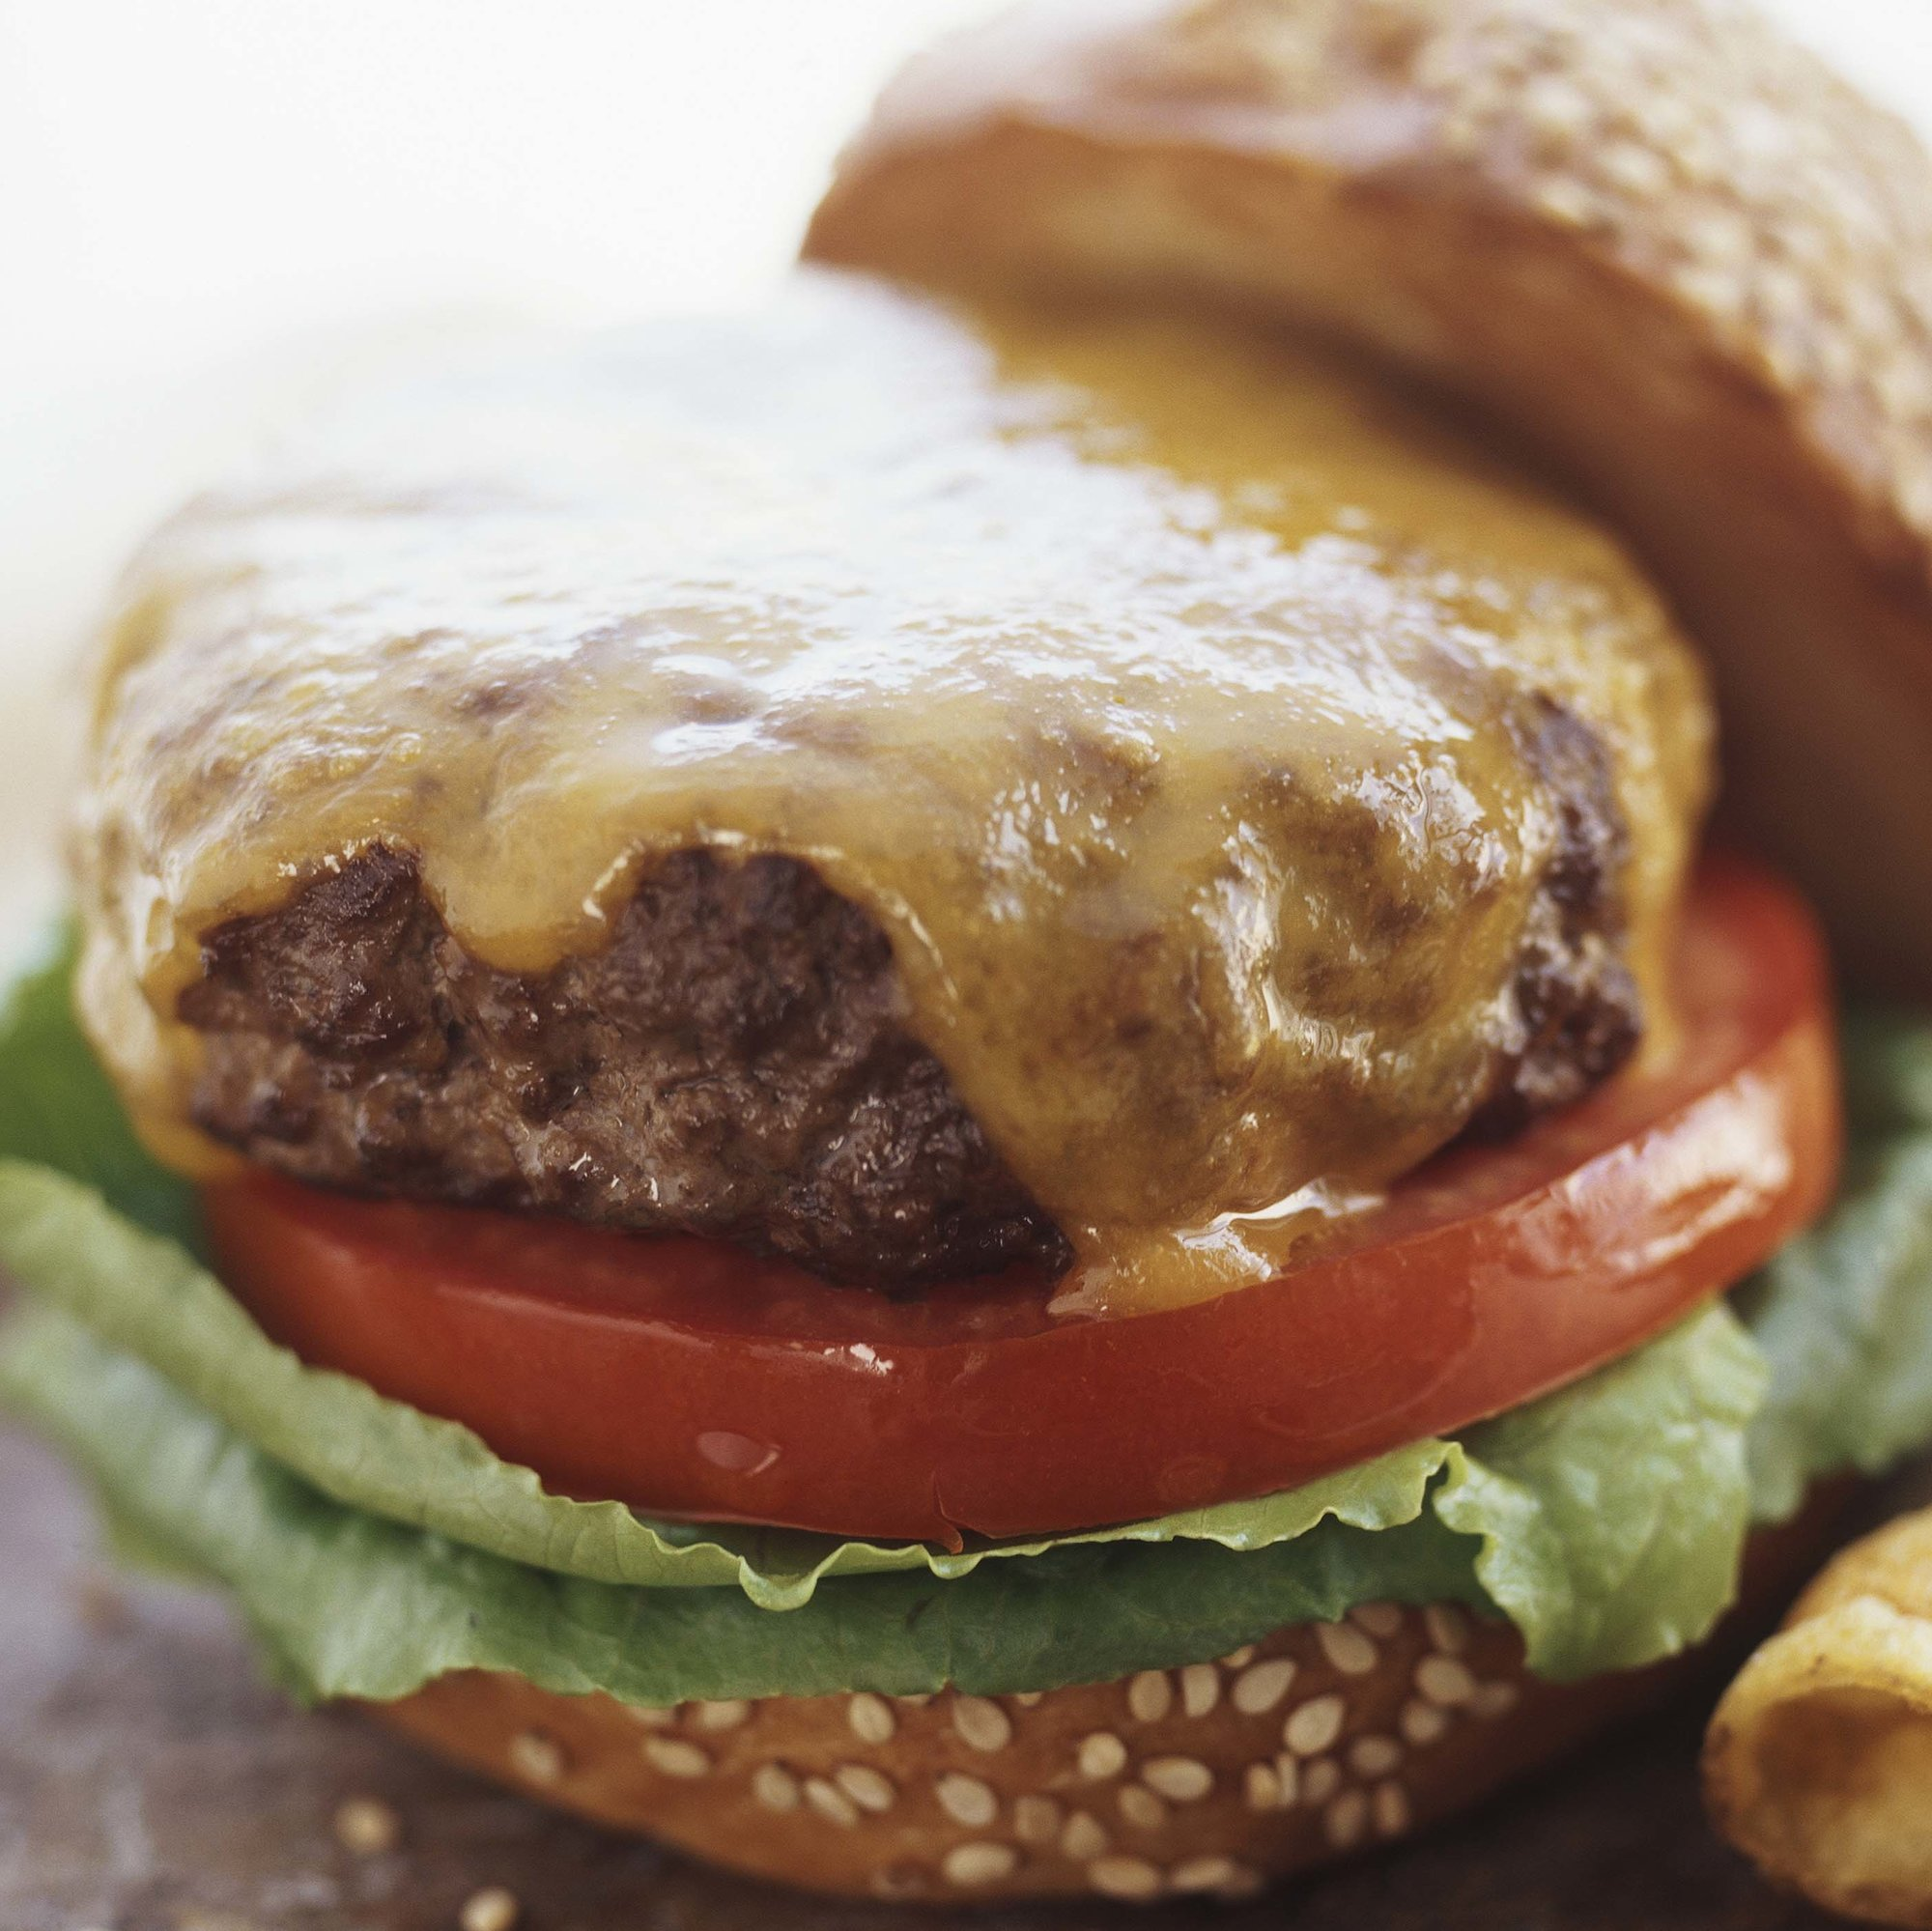 Eating Too Many Burgers Could Make a Breast Cancer Diagnosis More Dangerous